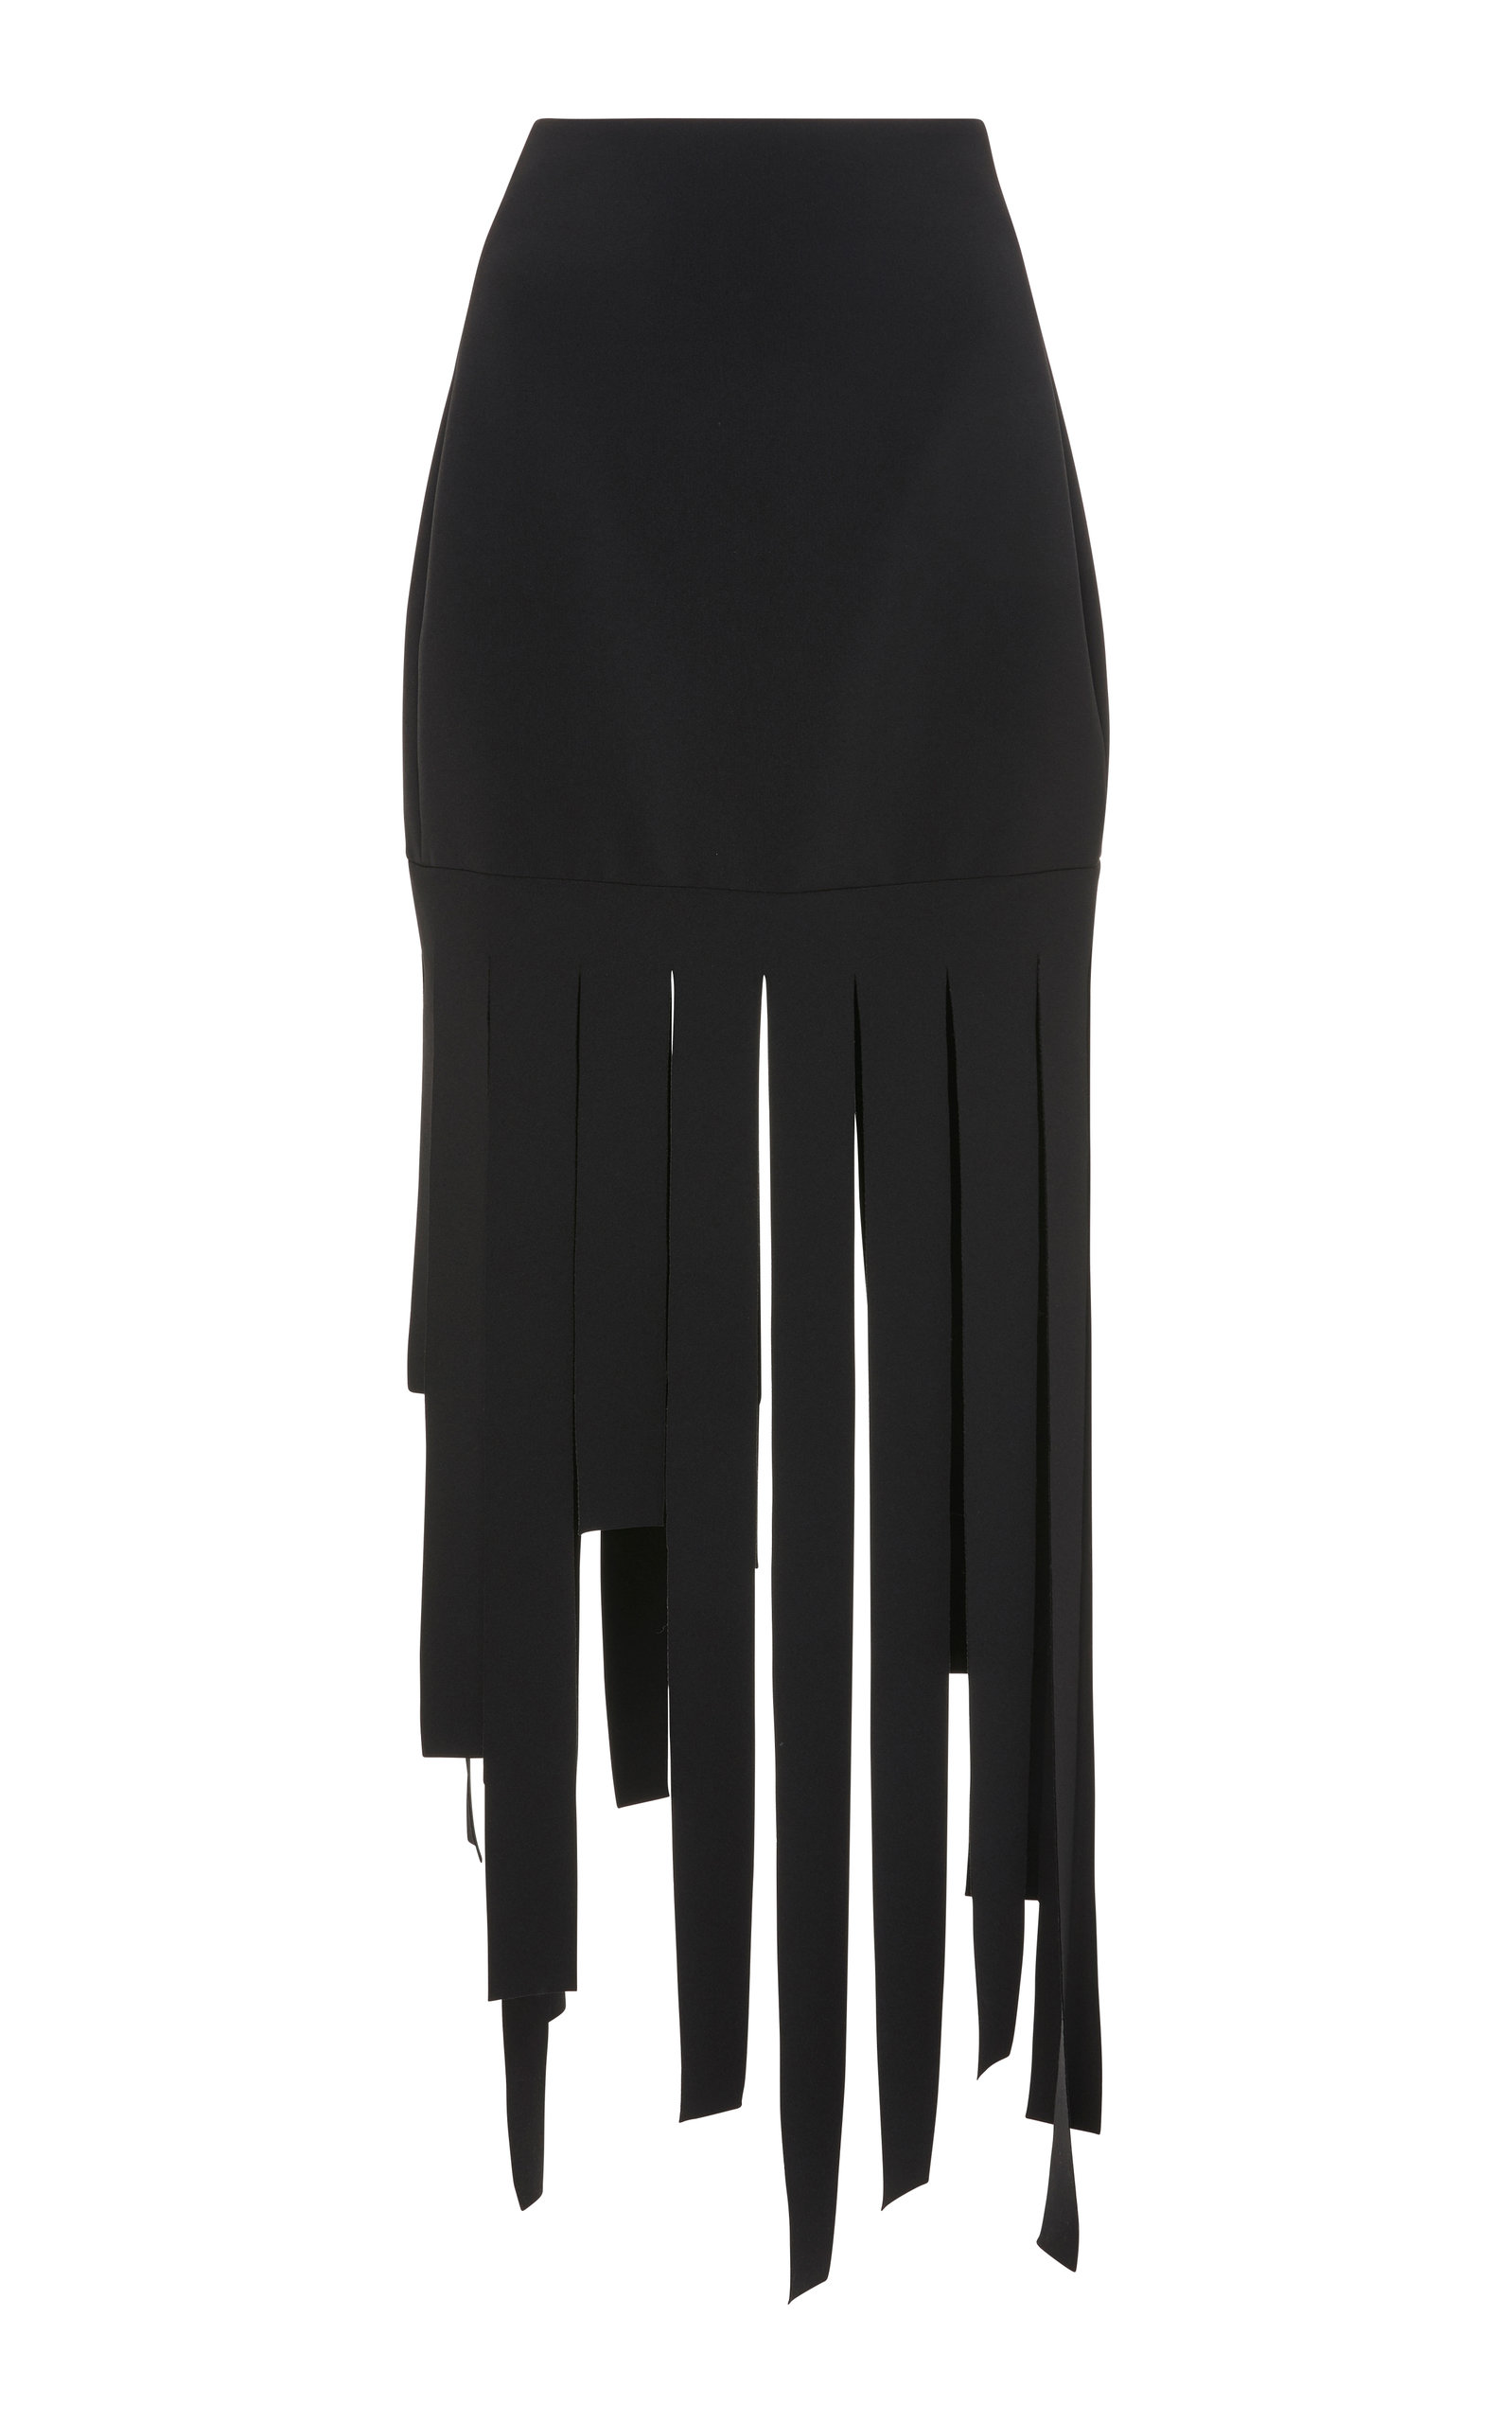 Fringed Crepe Skirt Carmen March Best Store To Get Free Shipping Outlet 704lV